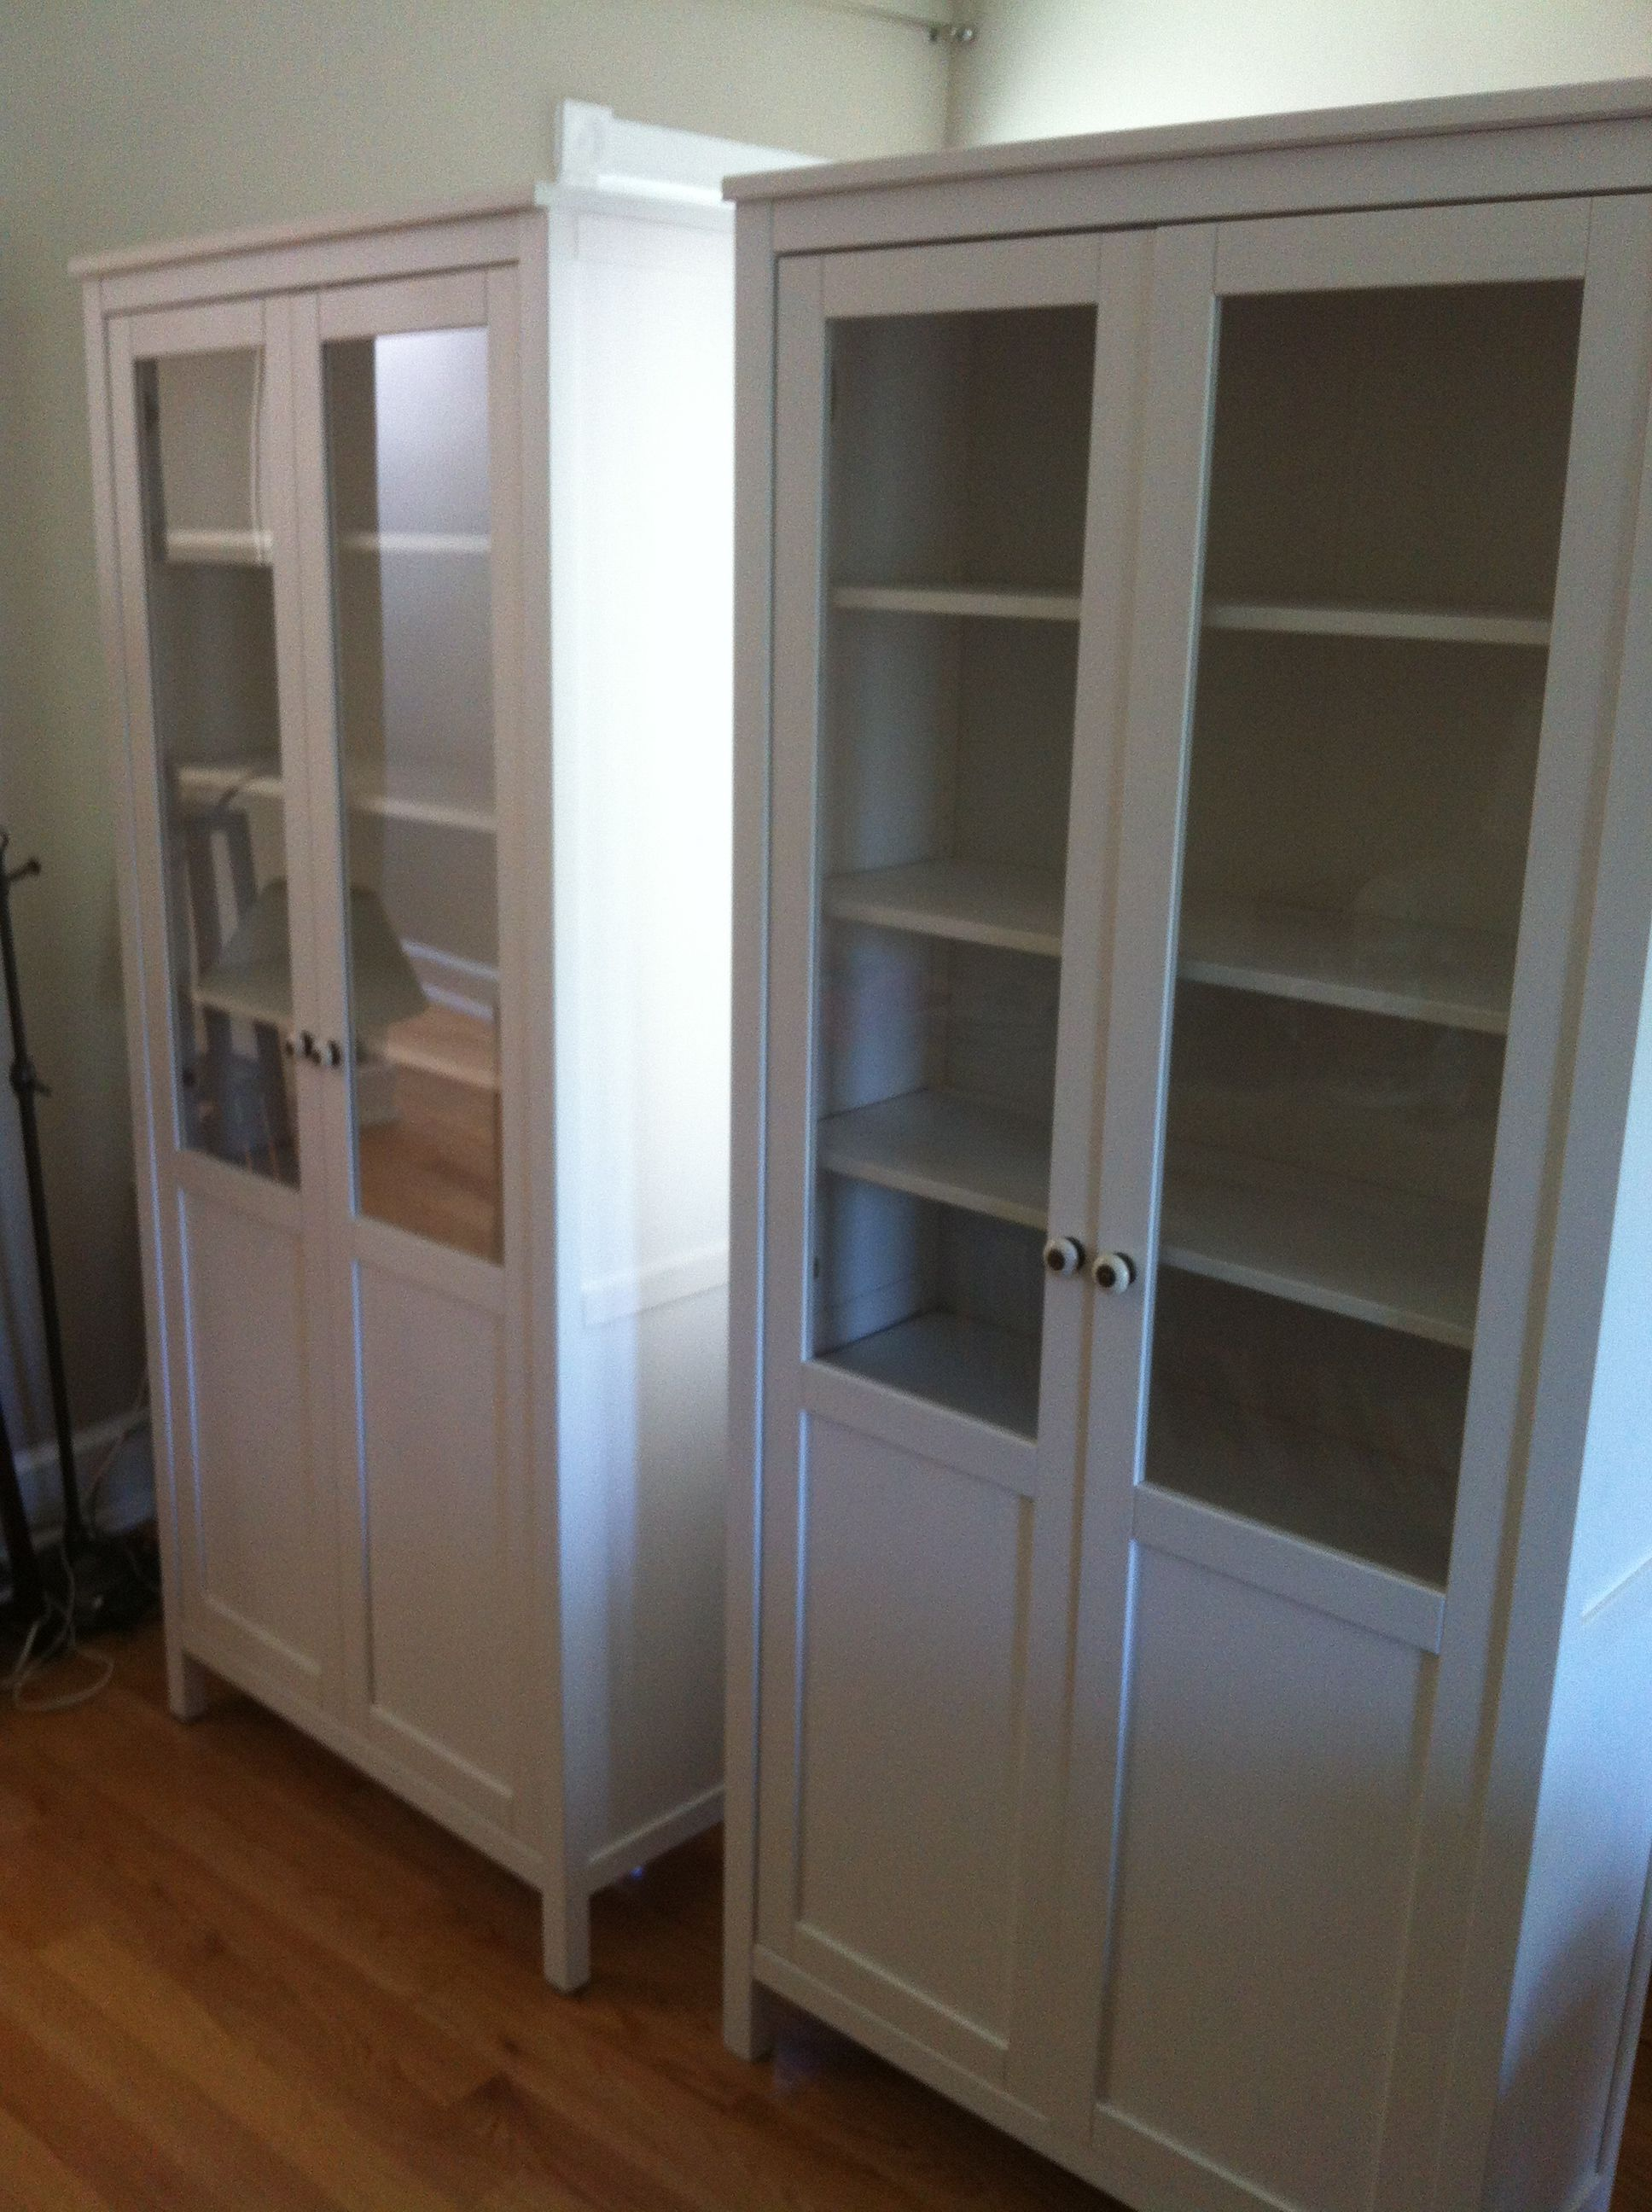 Ikea Hemnes Cabinet With Doors Assembled In New York City